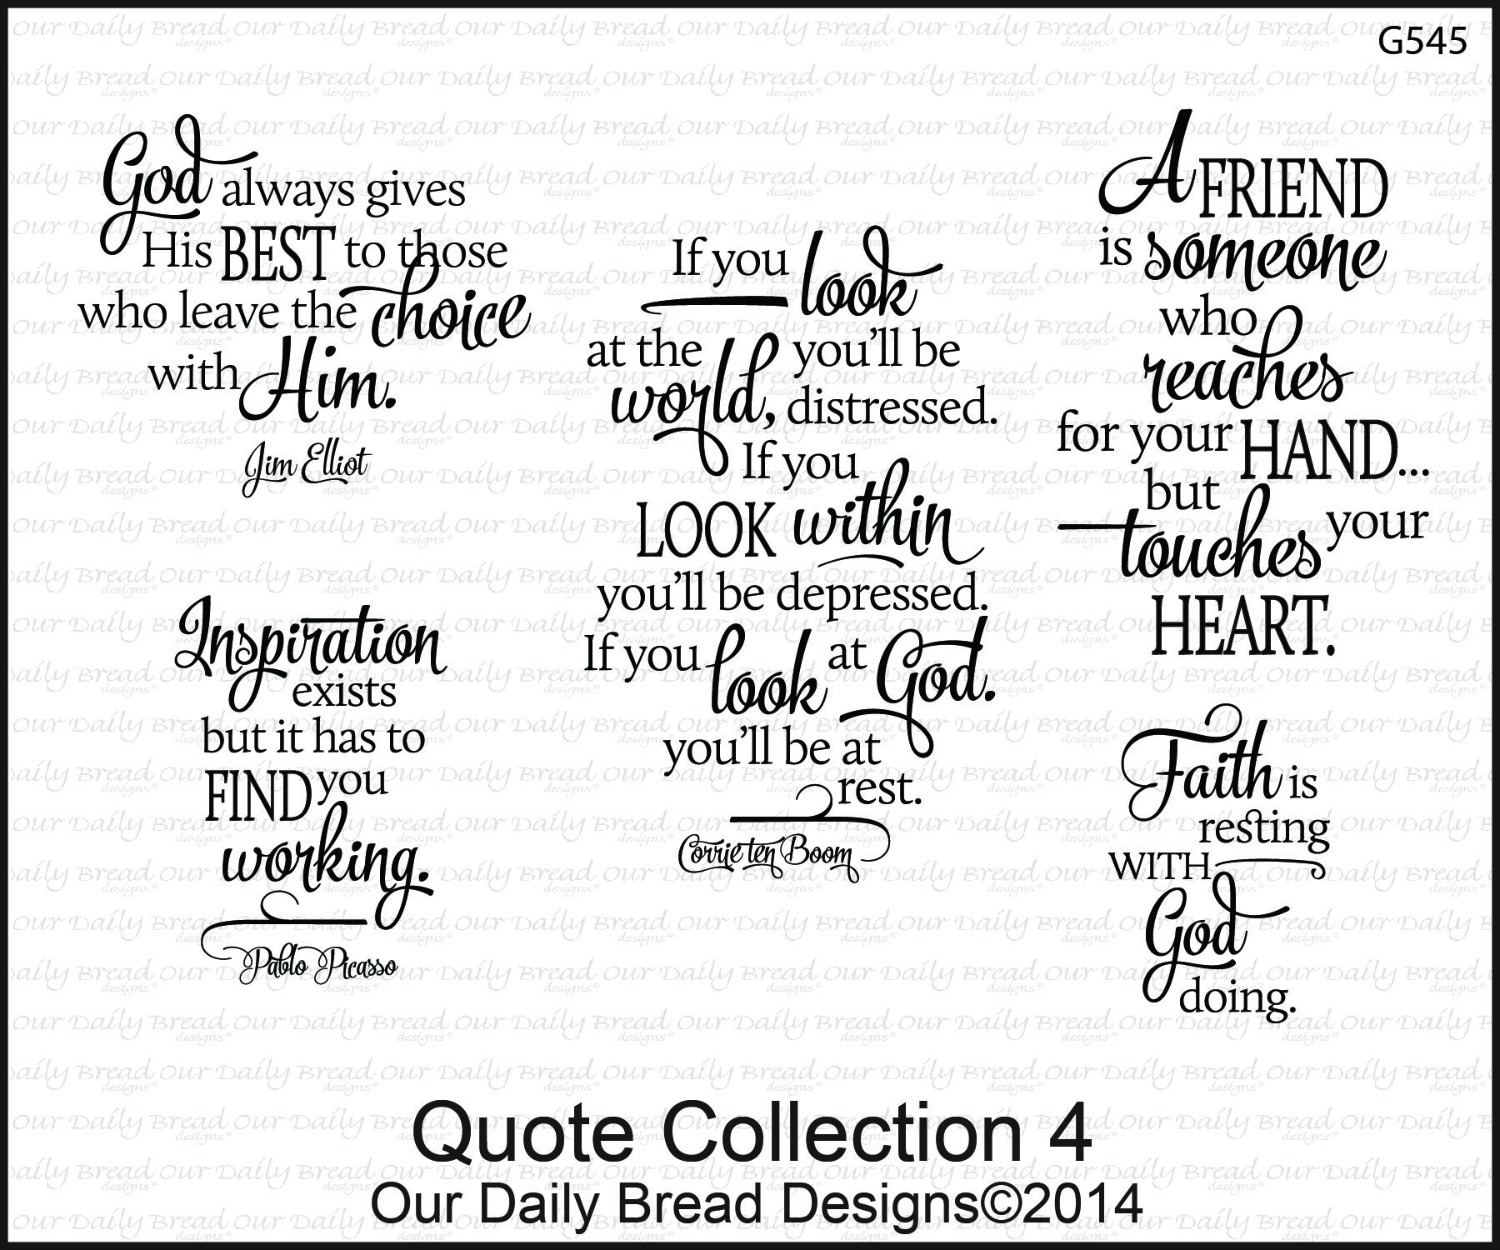 Stamps - Our Daily Bread Designs Quote Collection 4